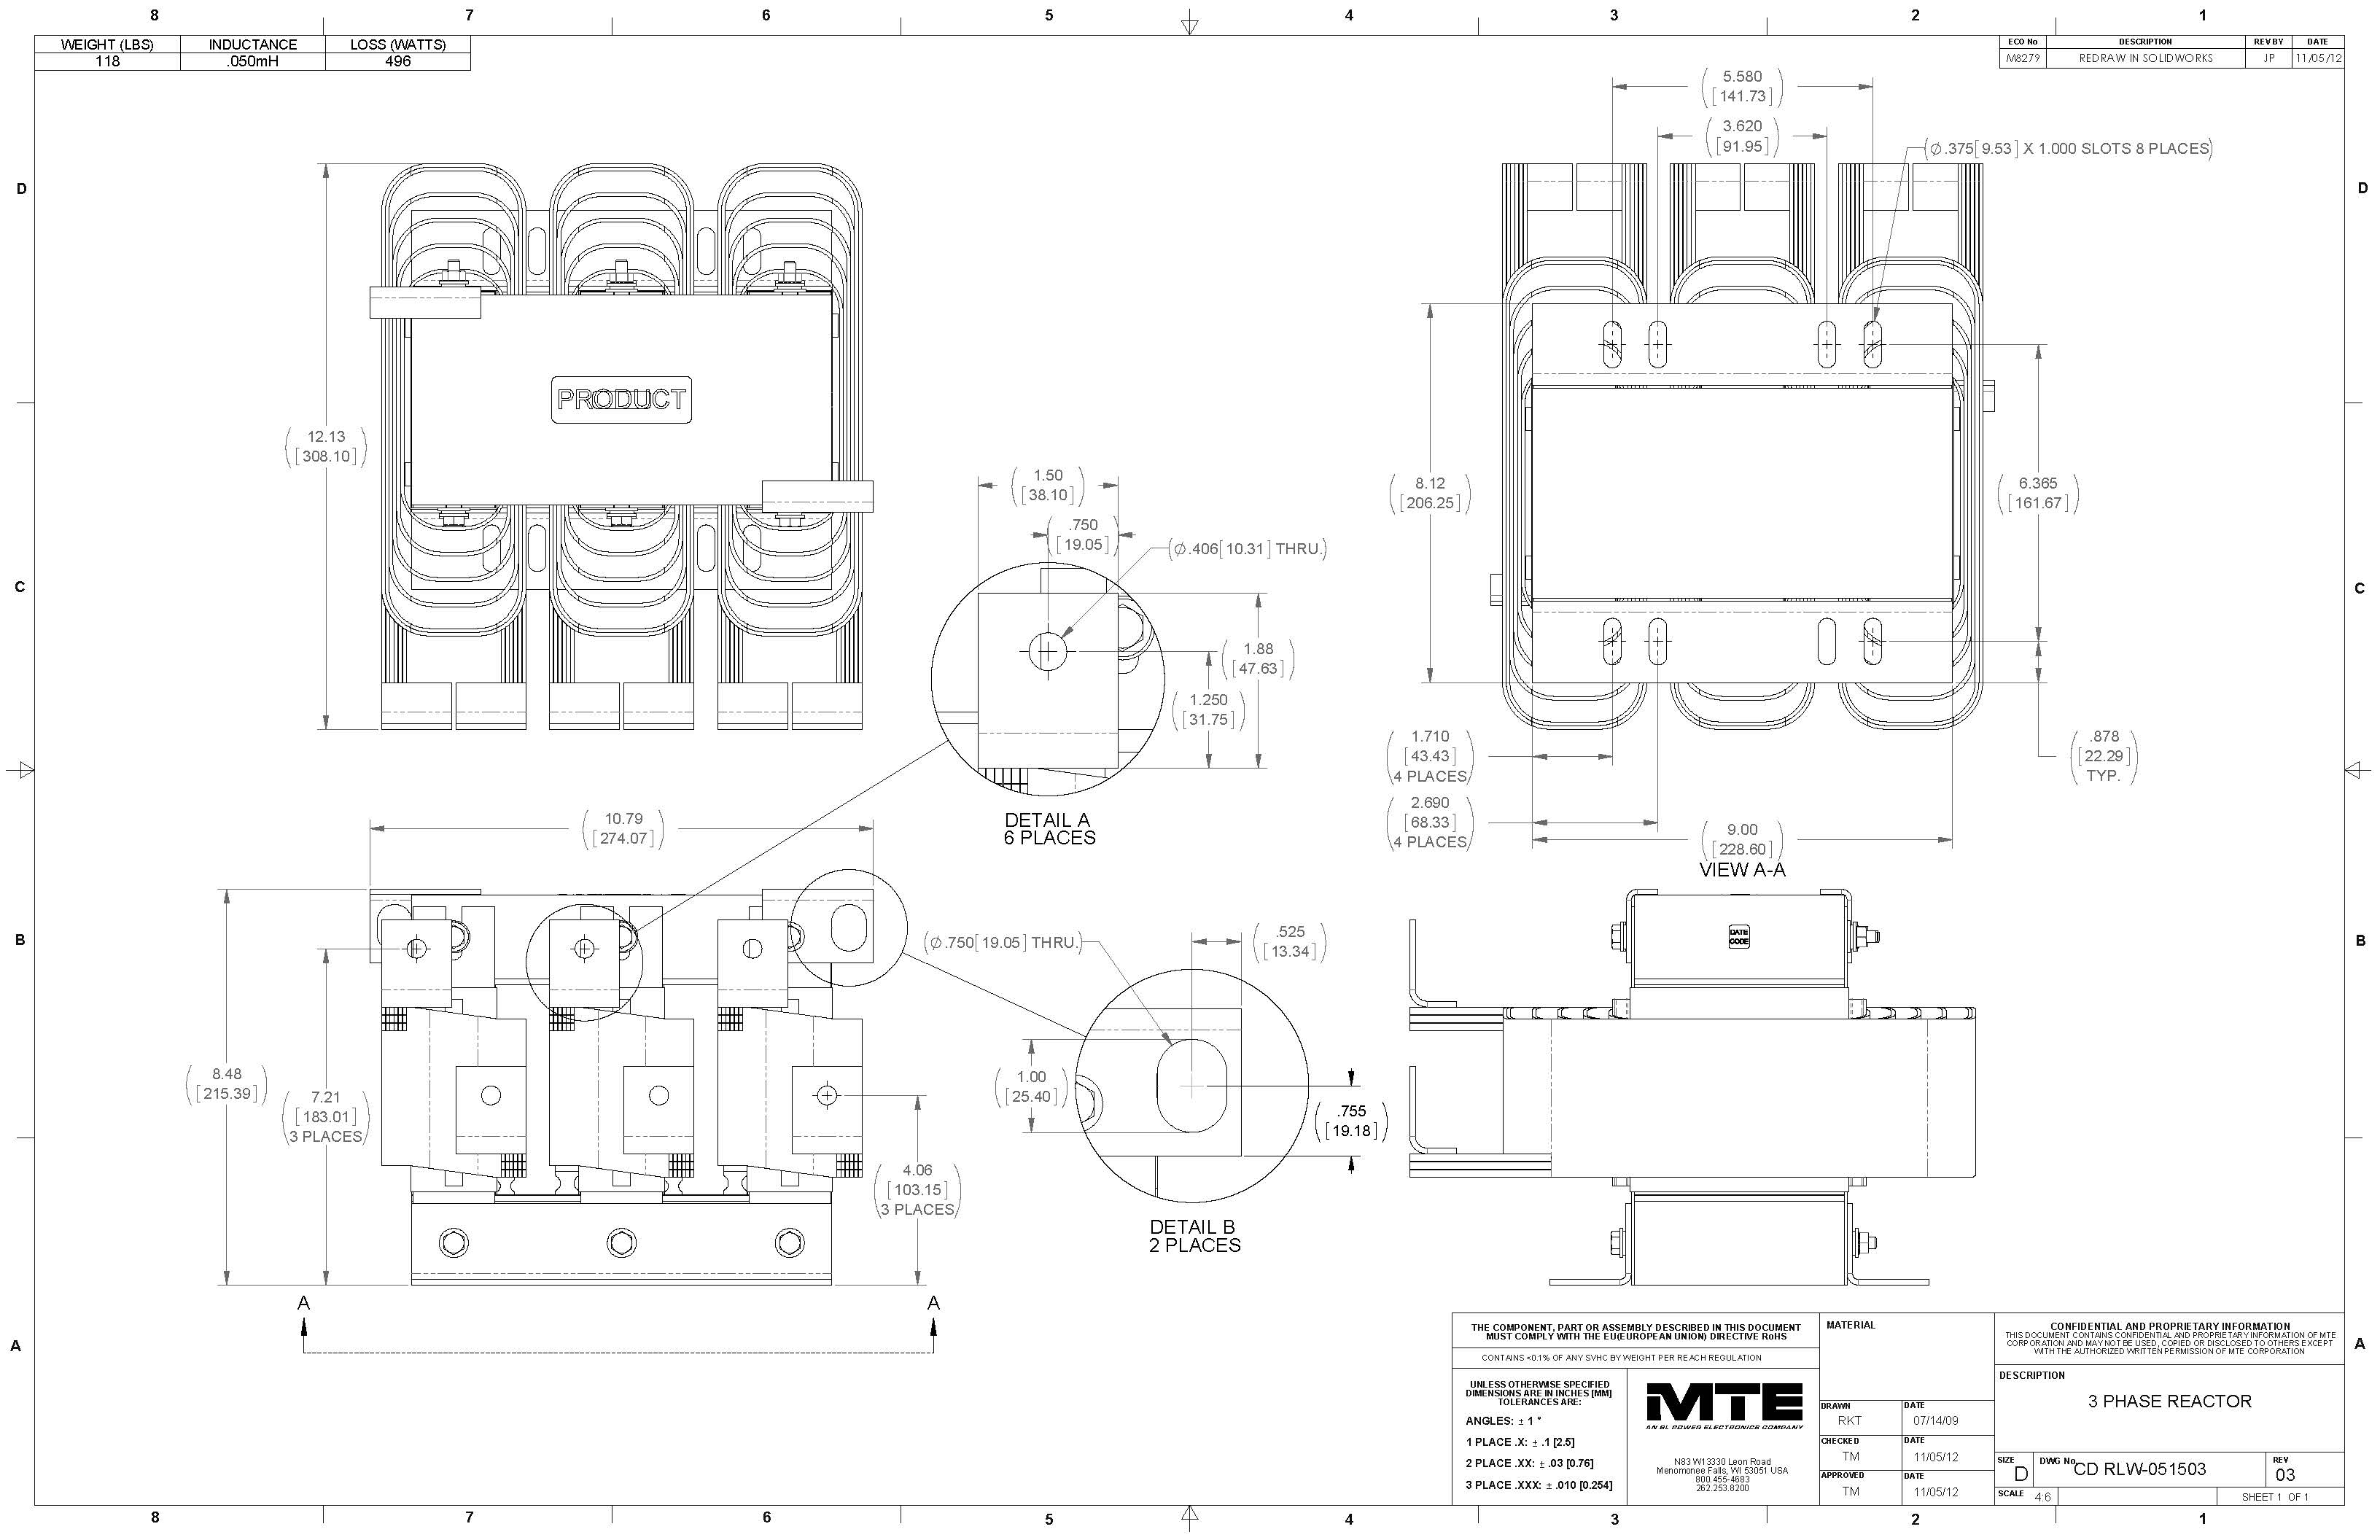 Image of an MTE Reactor RLW-051503